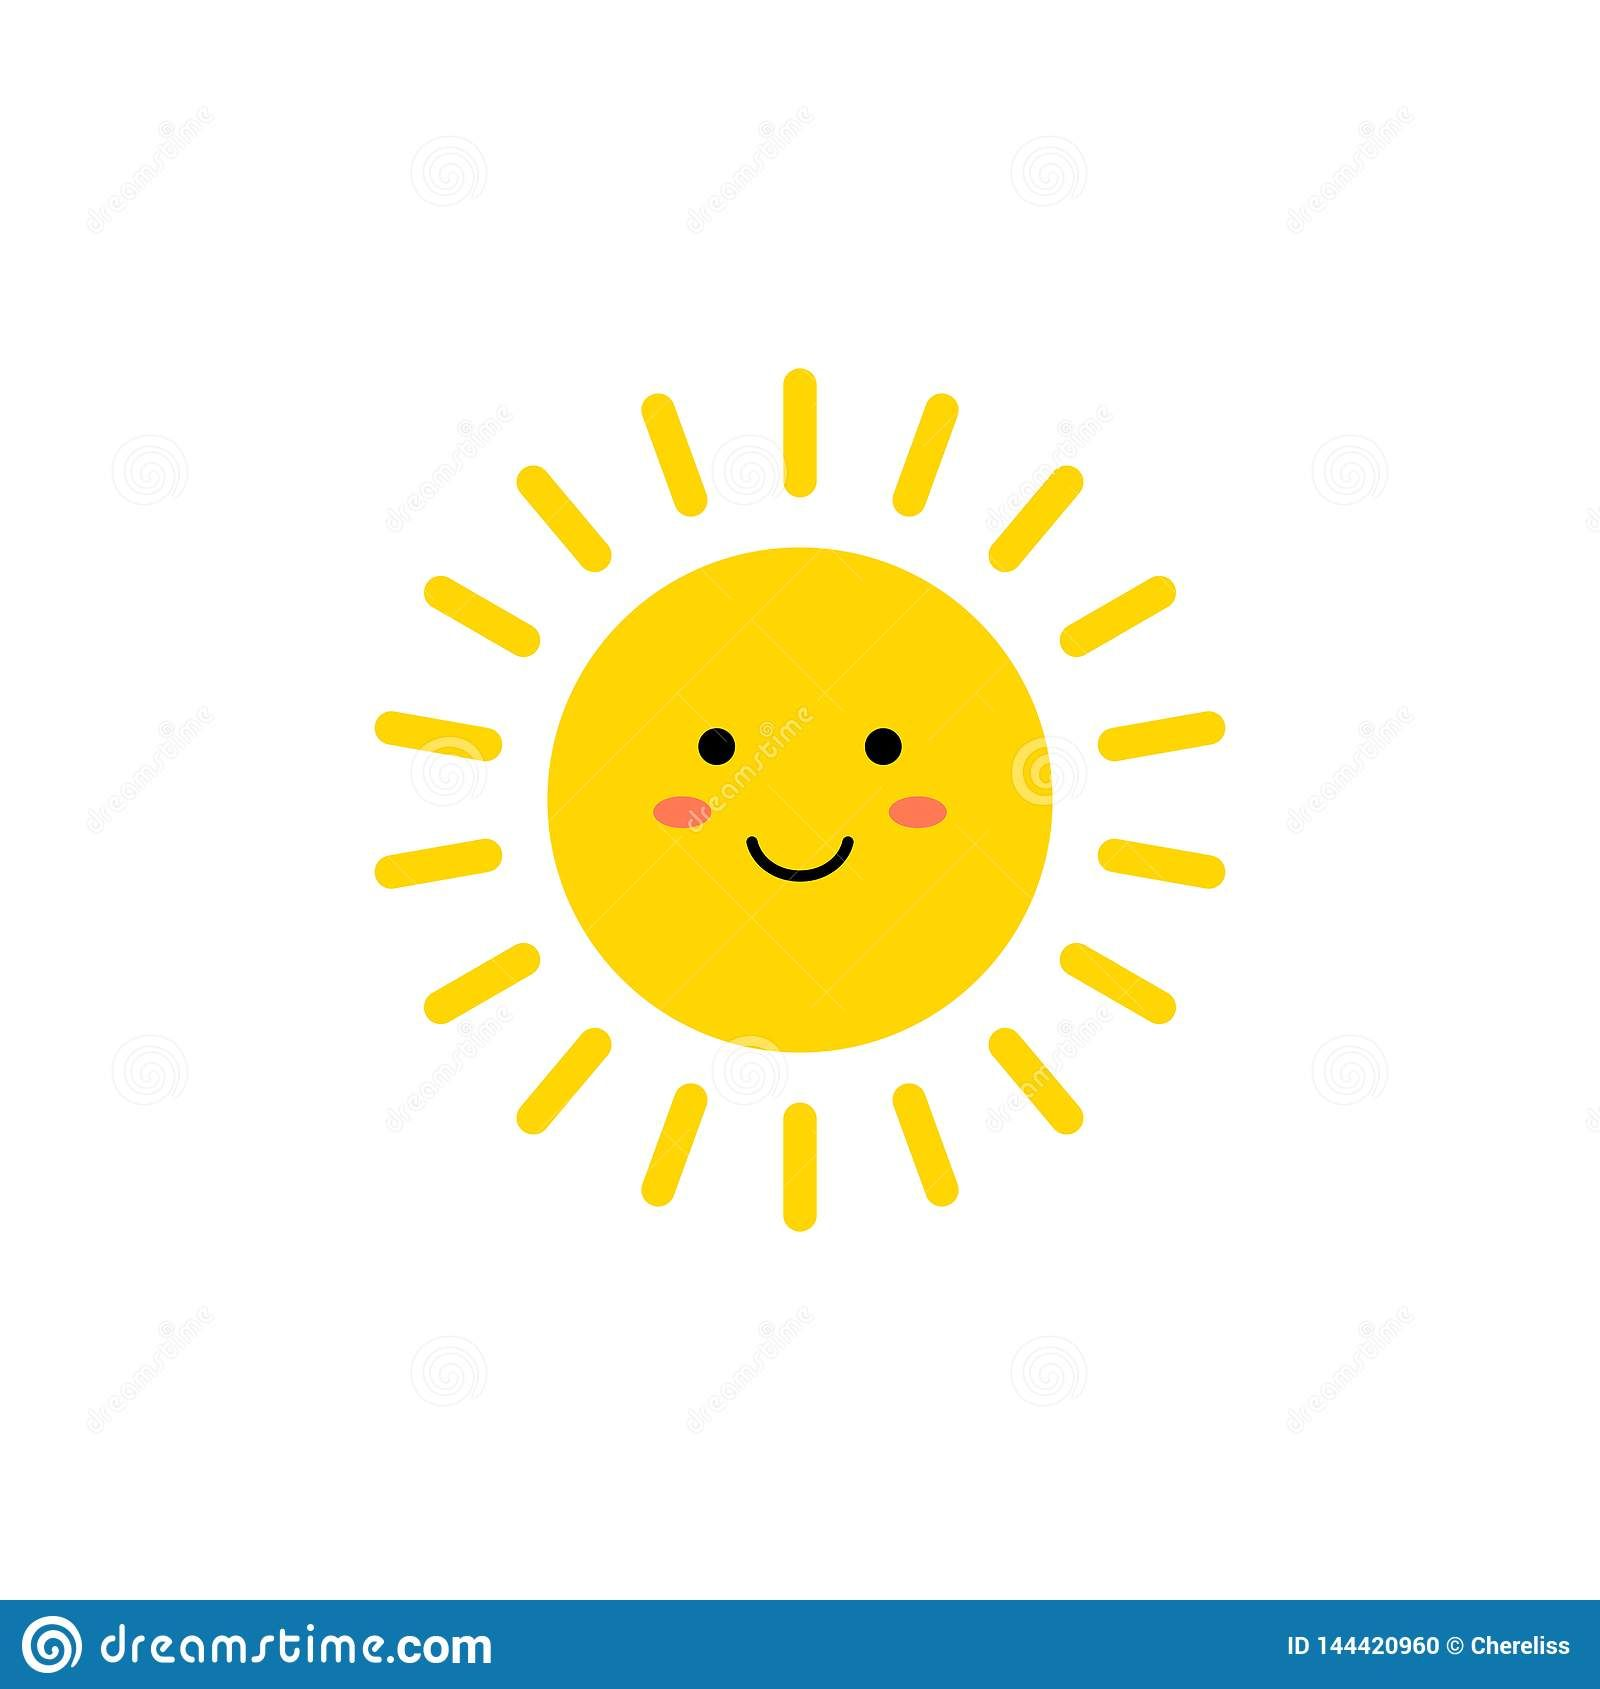 Illustration About Sun Vector Icon Cute Yellow Sun With Smiling Face Emoji Summer Emoticon Vector Illustration Isoalted Sun Doodles Emoticon Illustration